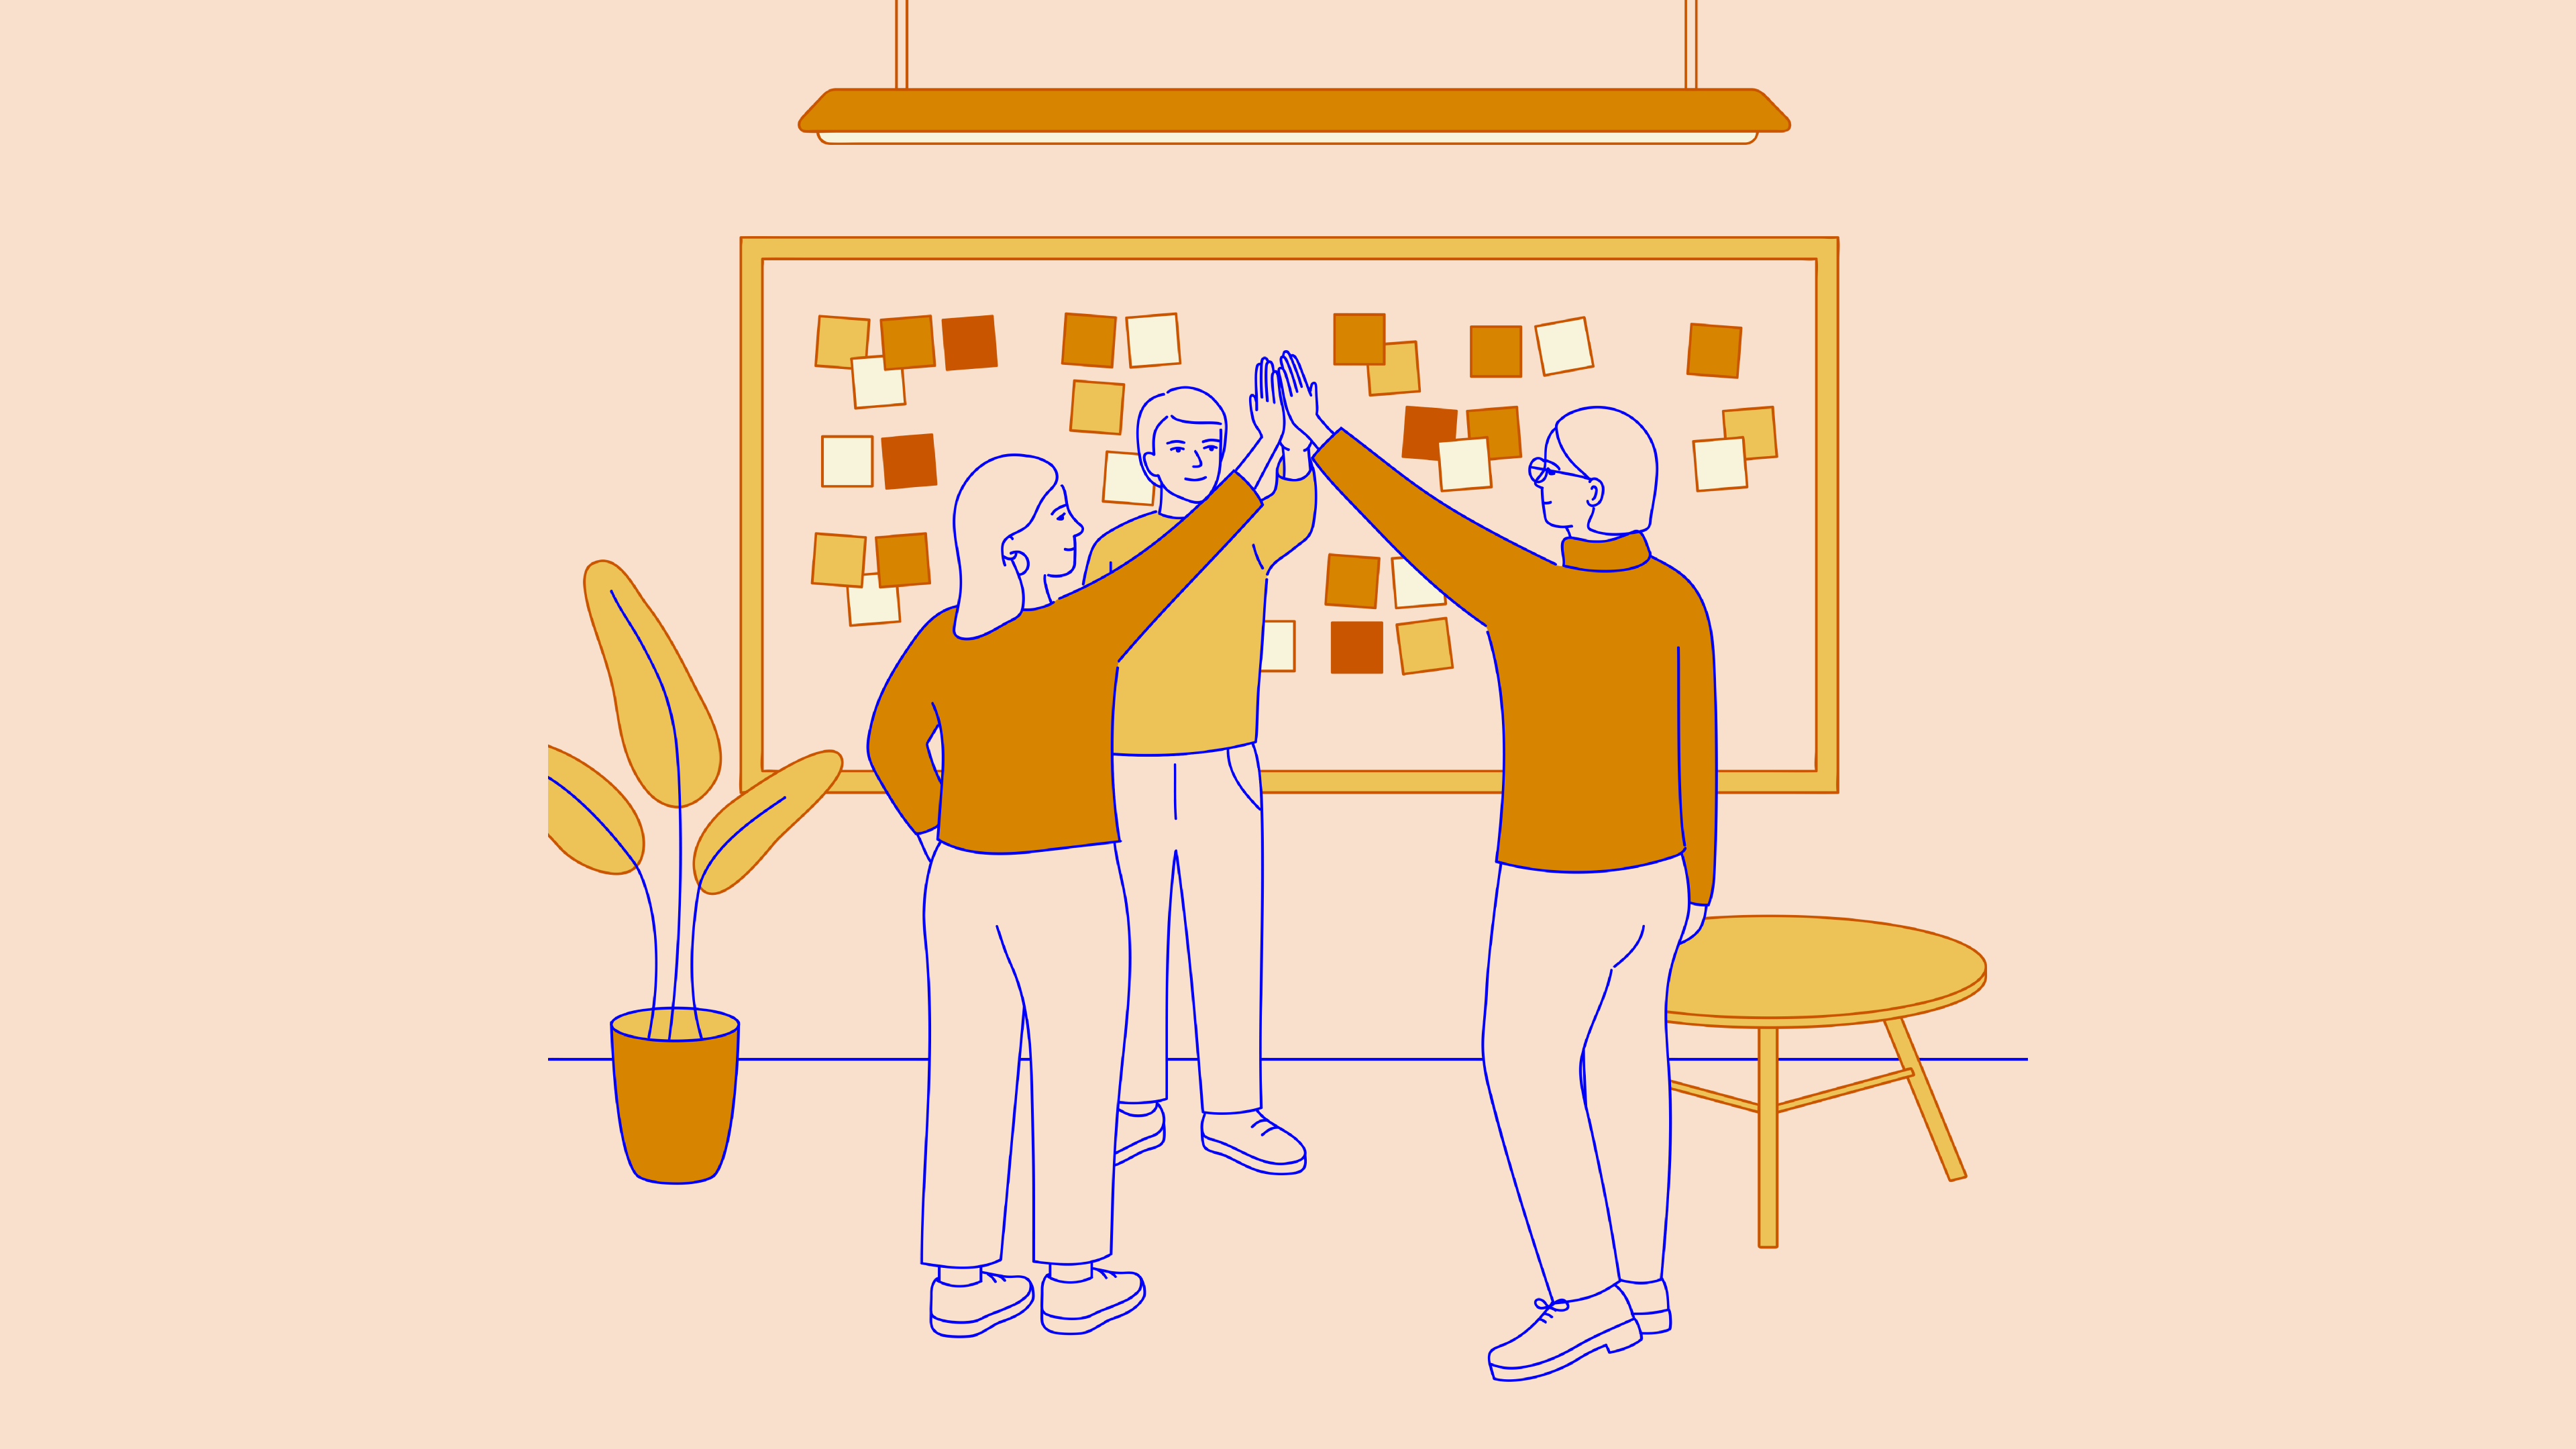 illustration of people doing a high-five with each other depicting success